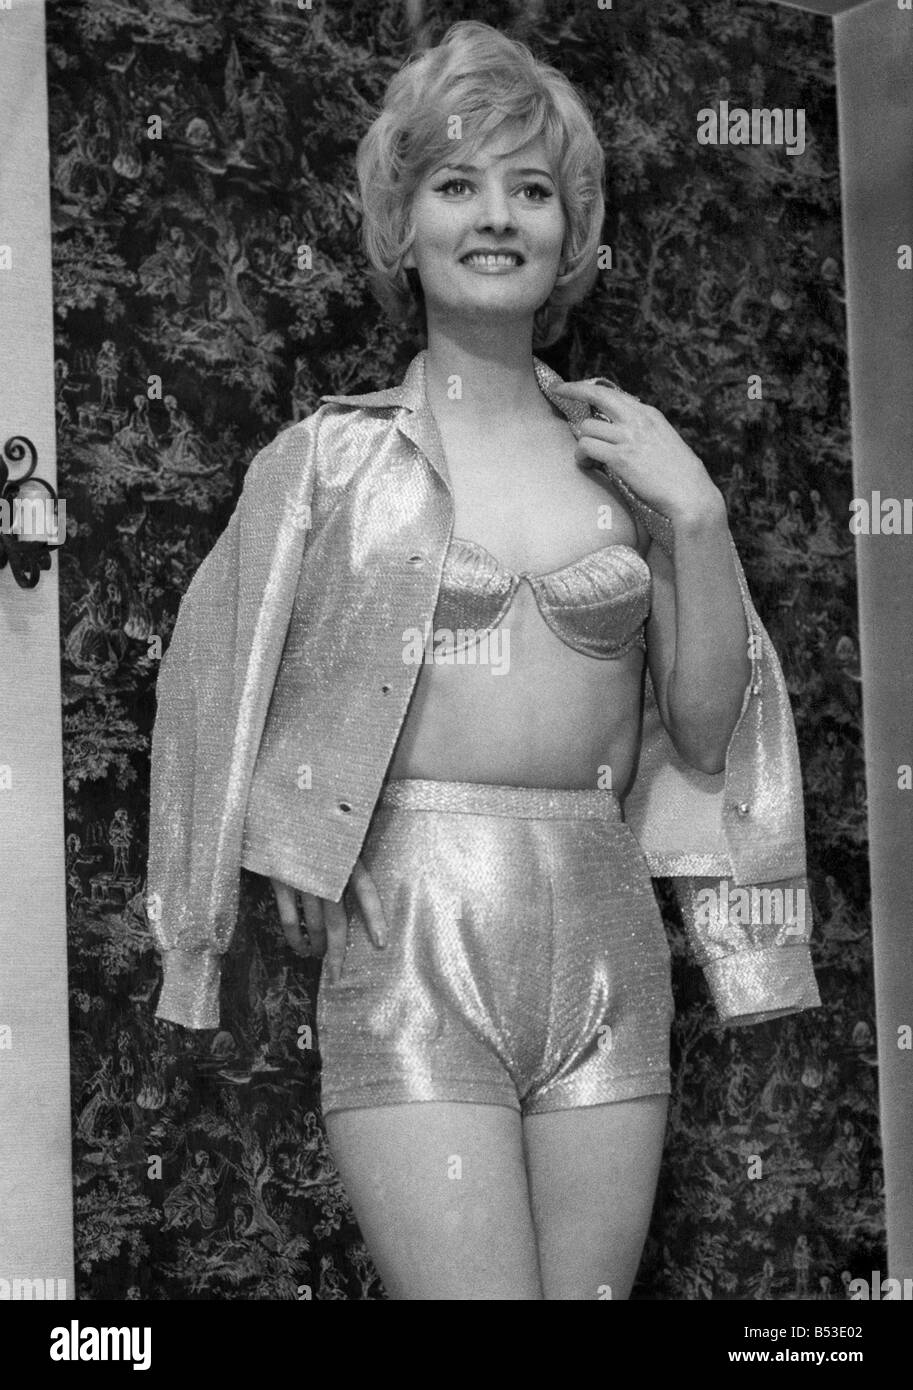 Clothing Swimwear: Shimmer me timbers! It's actress Pat Roberts, 22, pictured showing off a 1961 golden fabric - Stock Image